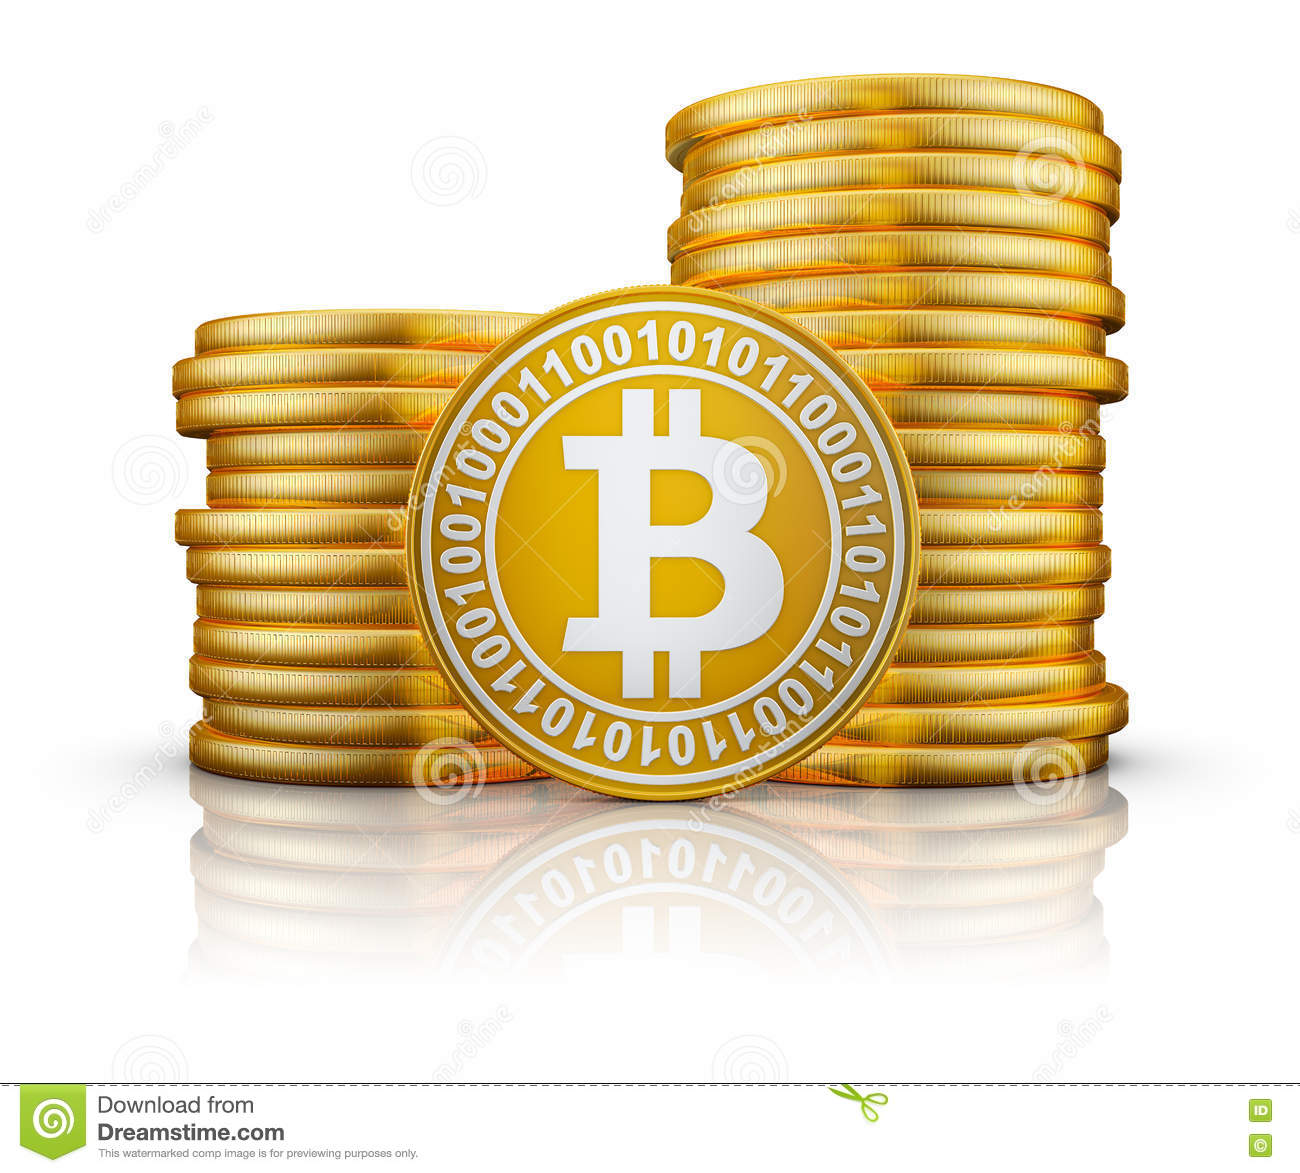 O ouro Bitcoins